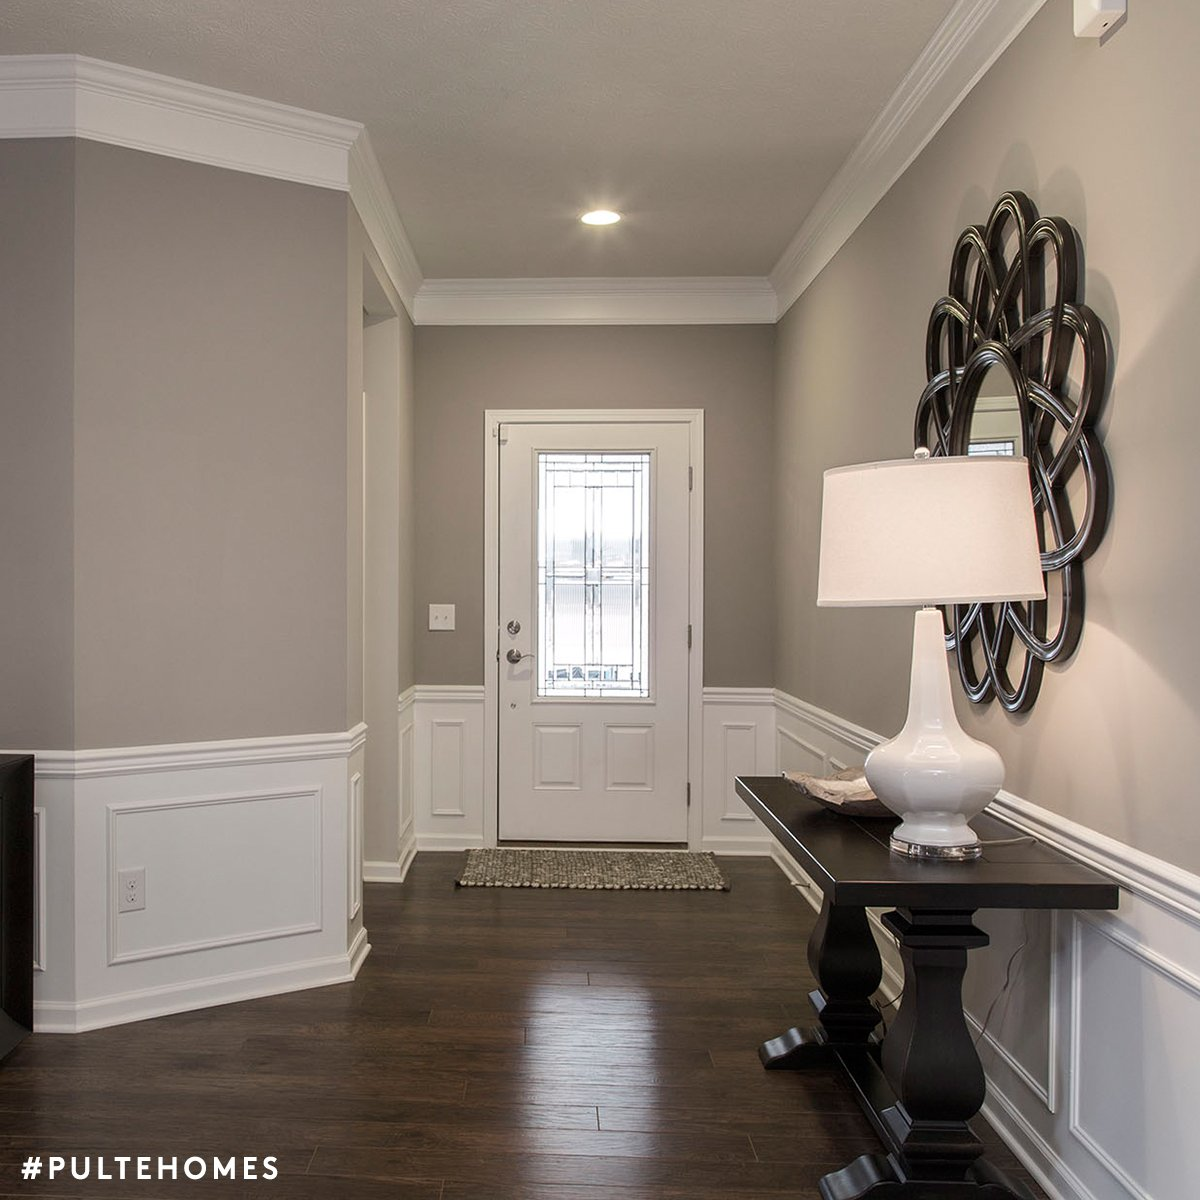 Sherwin williams mindful gray color spotlight Shades of grey interior paint